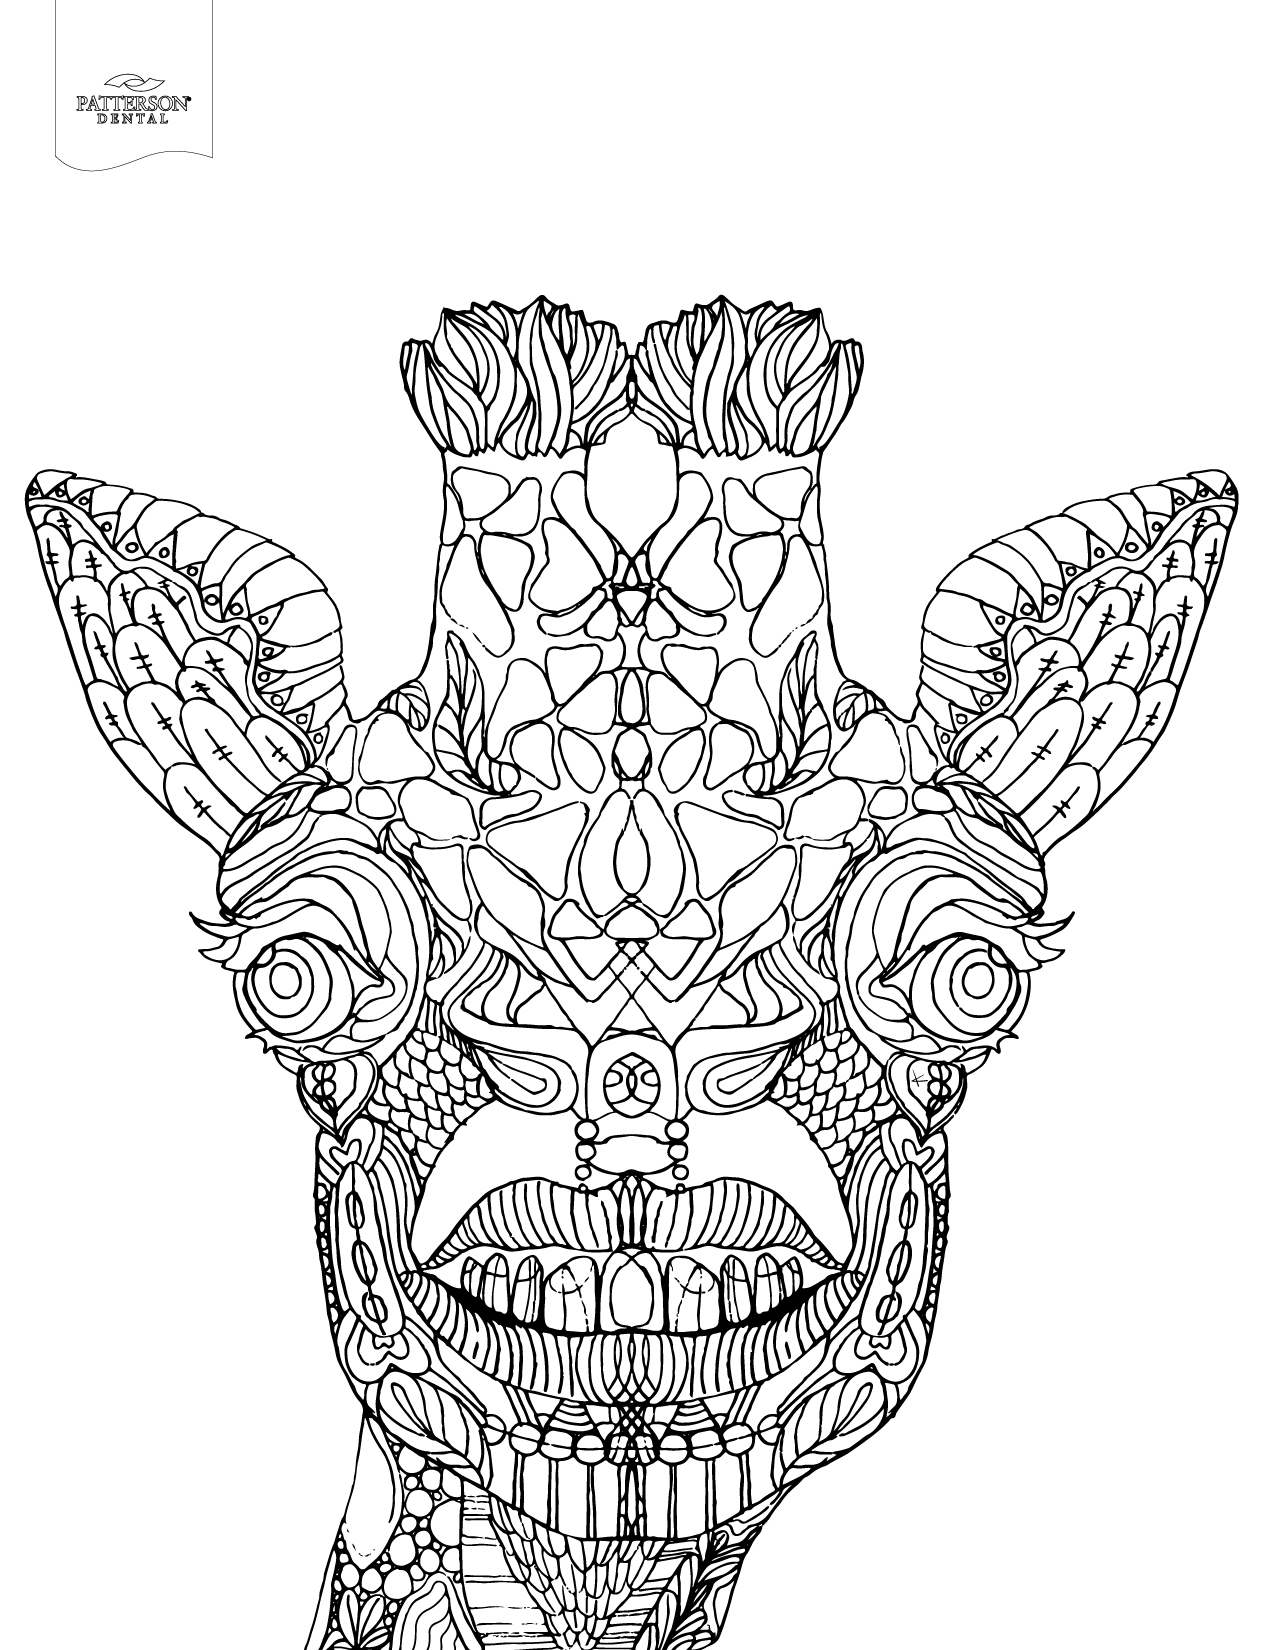 coloring images 10 toothy adult coloring pages printable off the cusp coloring images 1 1